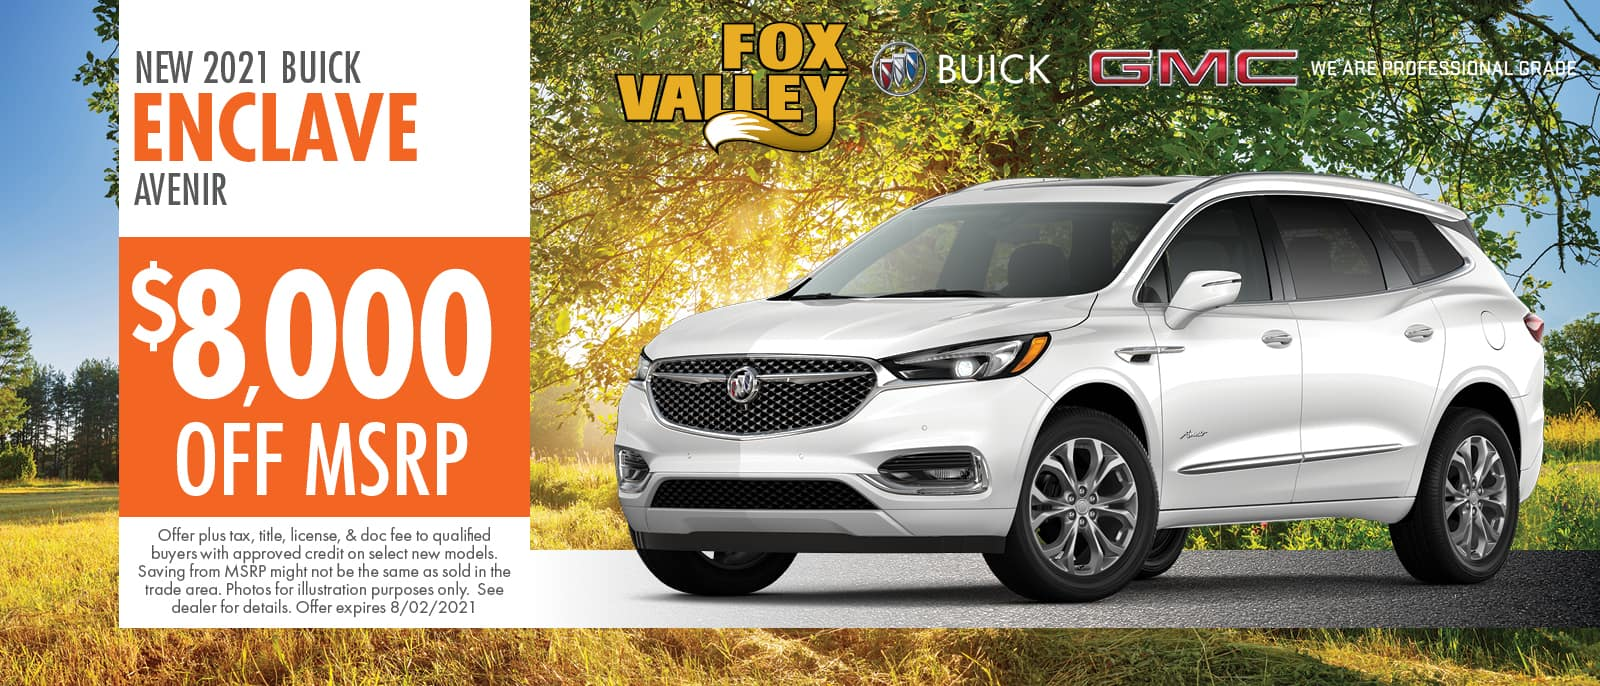 2021 Buick Enclave Offer | Fox Valley Buick GMC